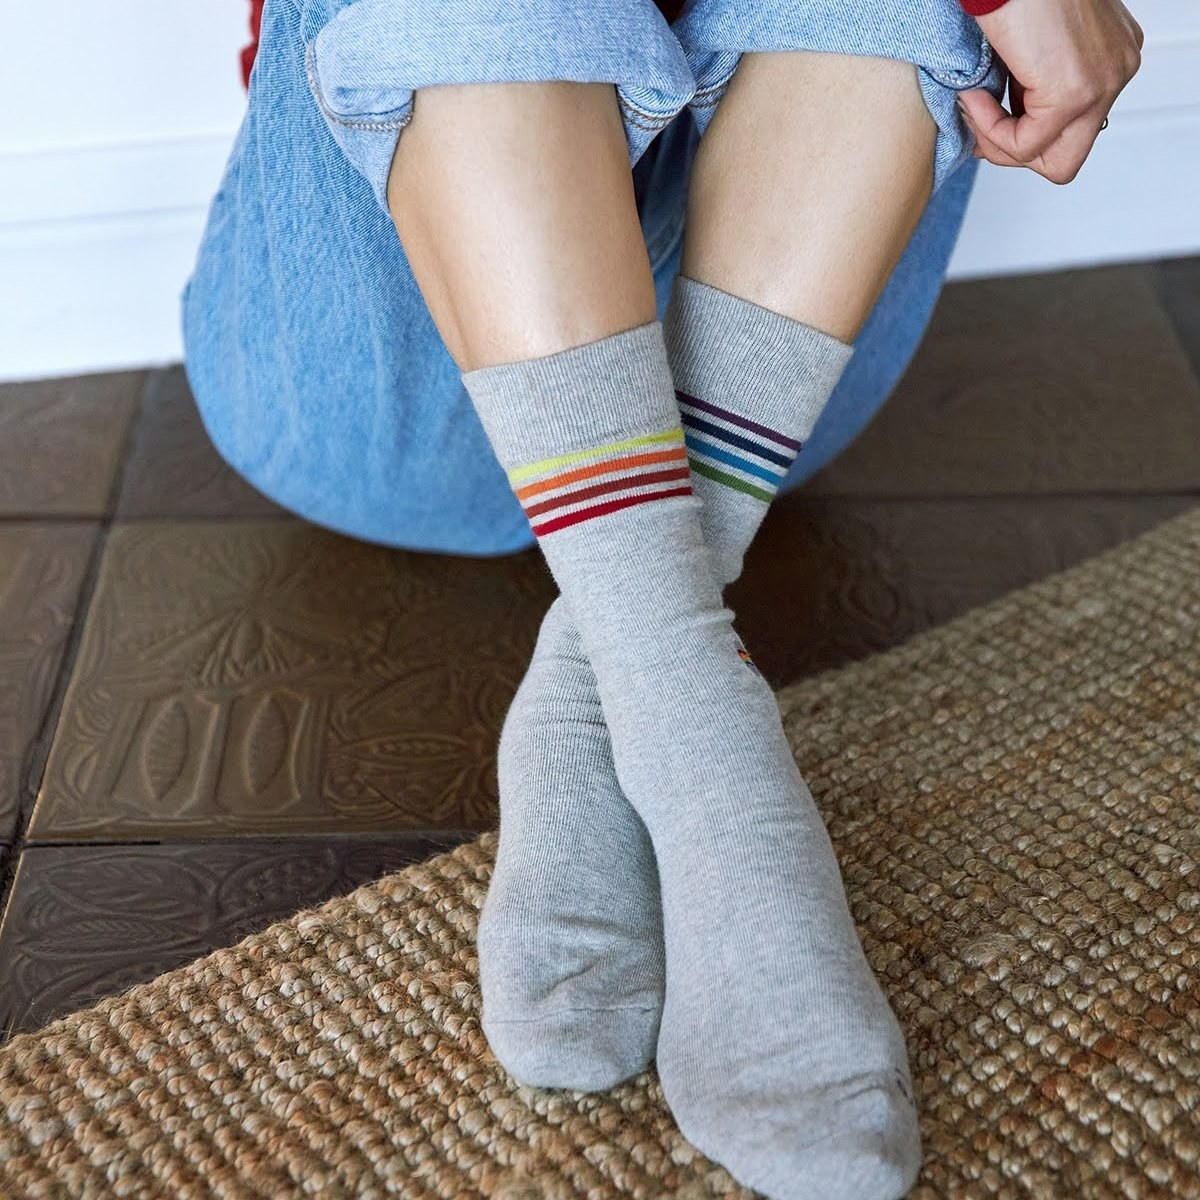 A person wearing the socks